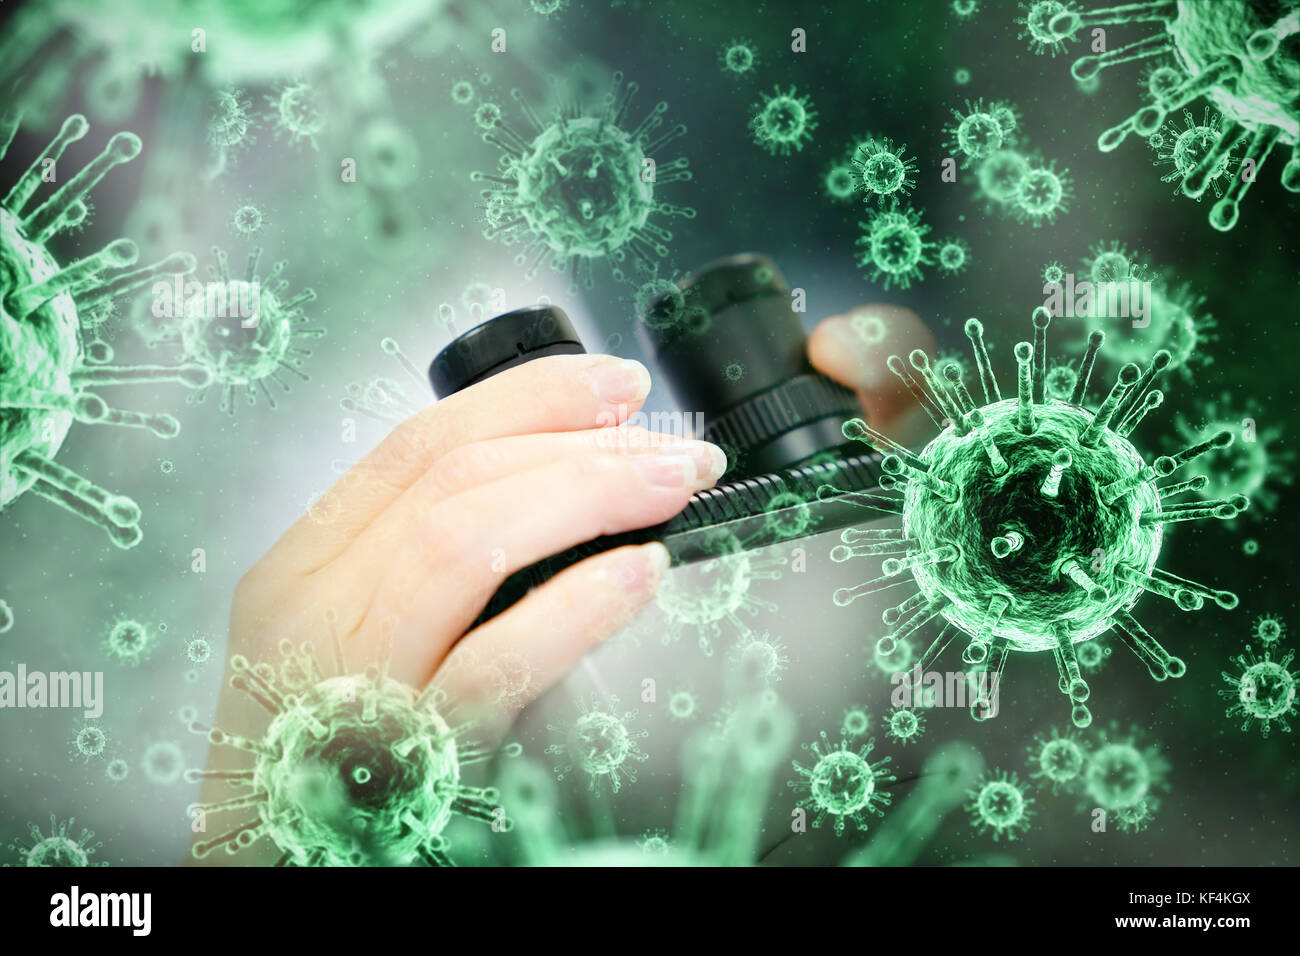 Digital image of green virus against close up of a female scientist looking through a microscope - Stock Image